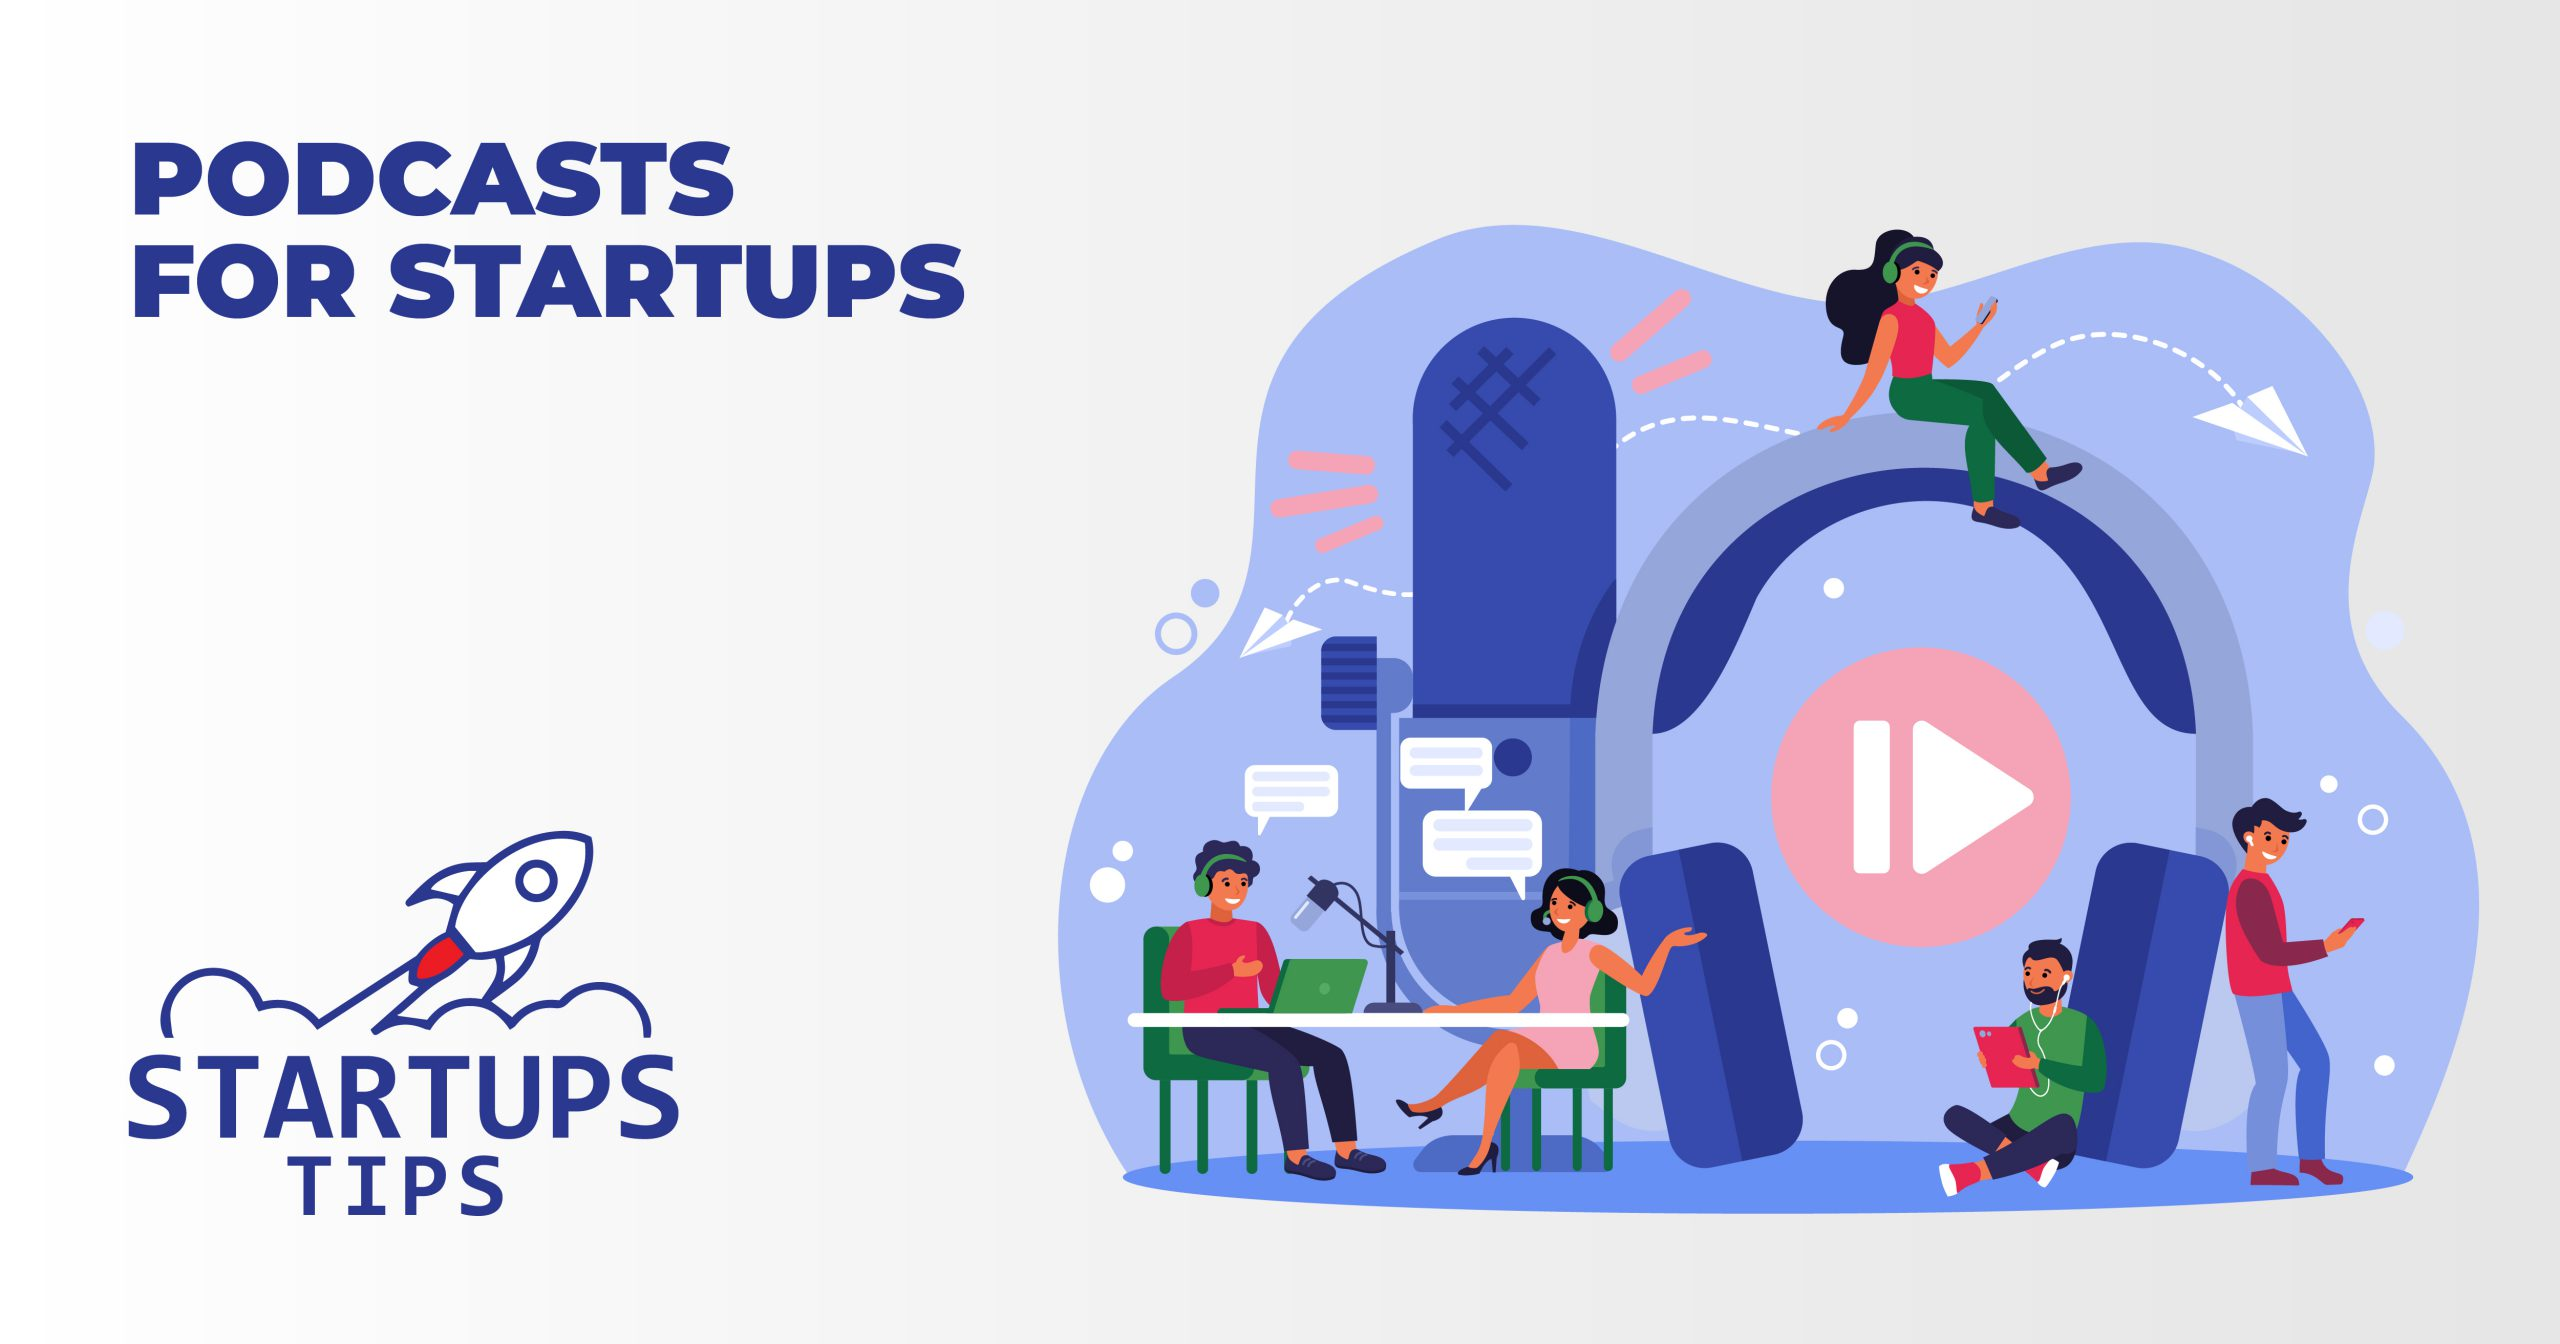 13+ Best Podcasts for Startups in 2021